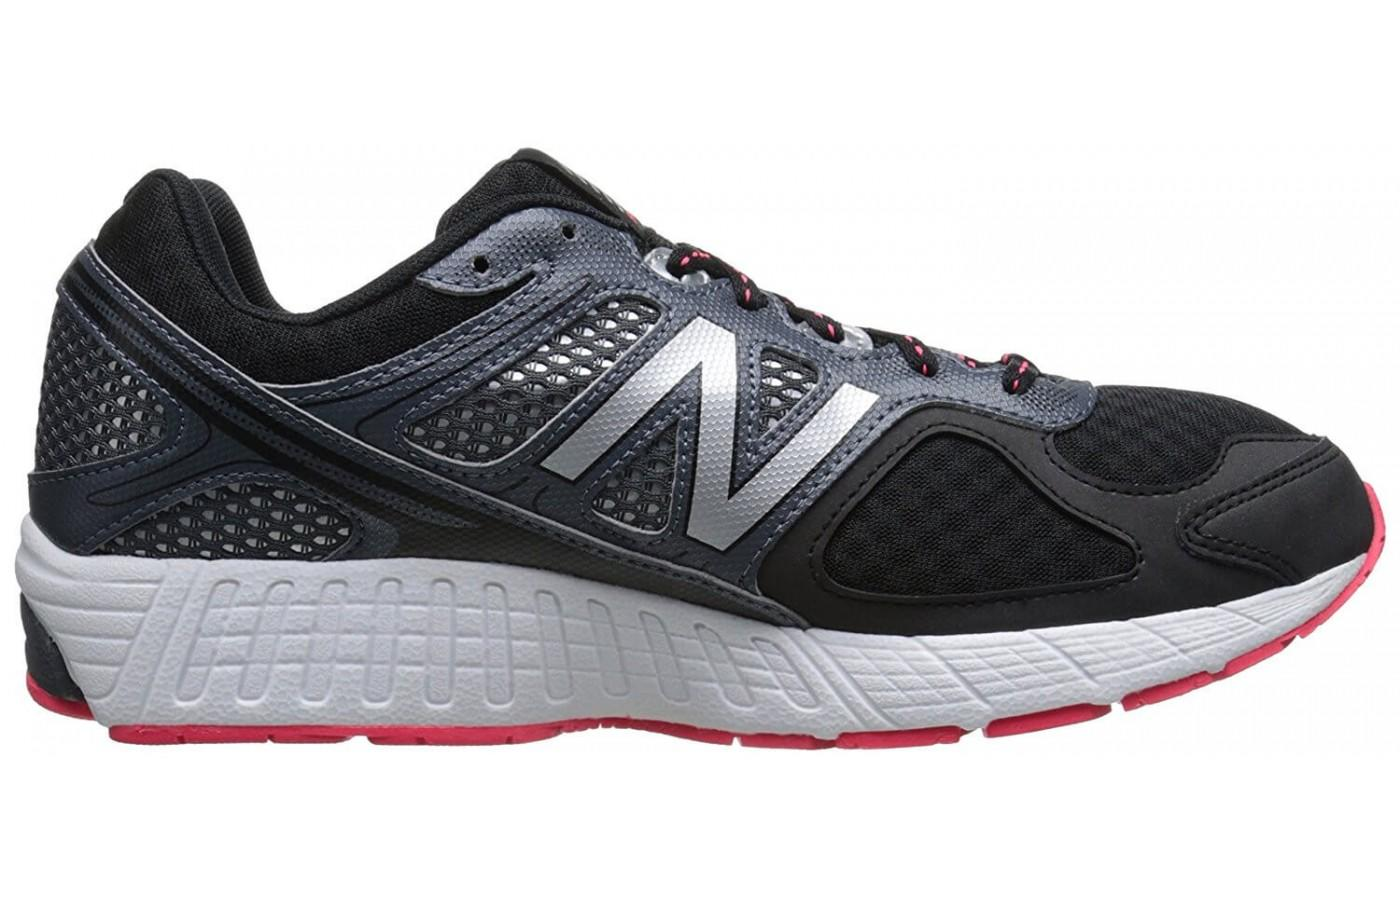 b7cdadb5ebfa New Balance 670 v1 Reviewed - To Buy or Not in Apr 2019